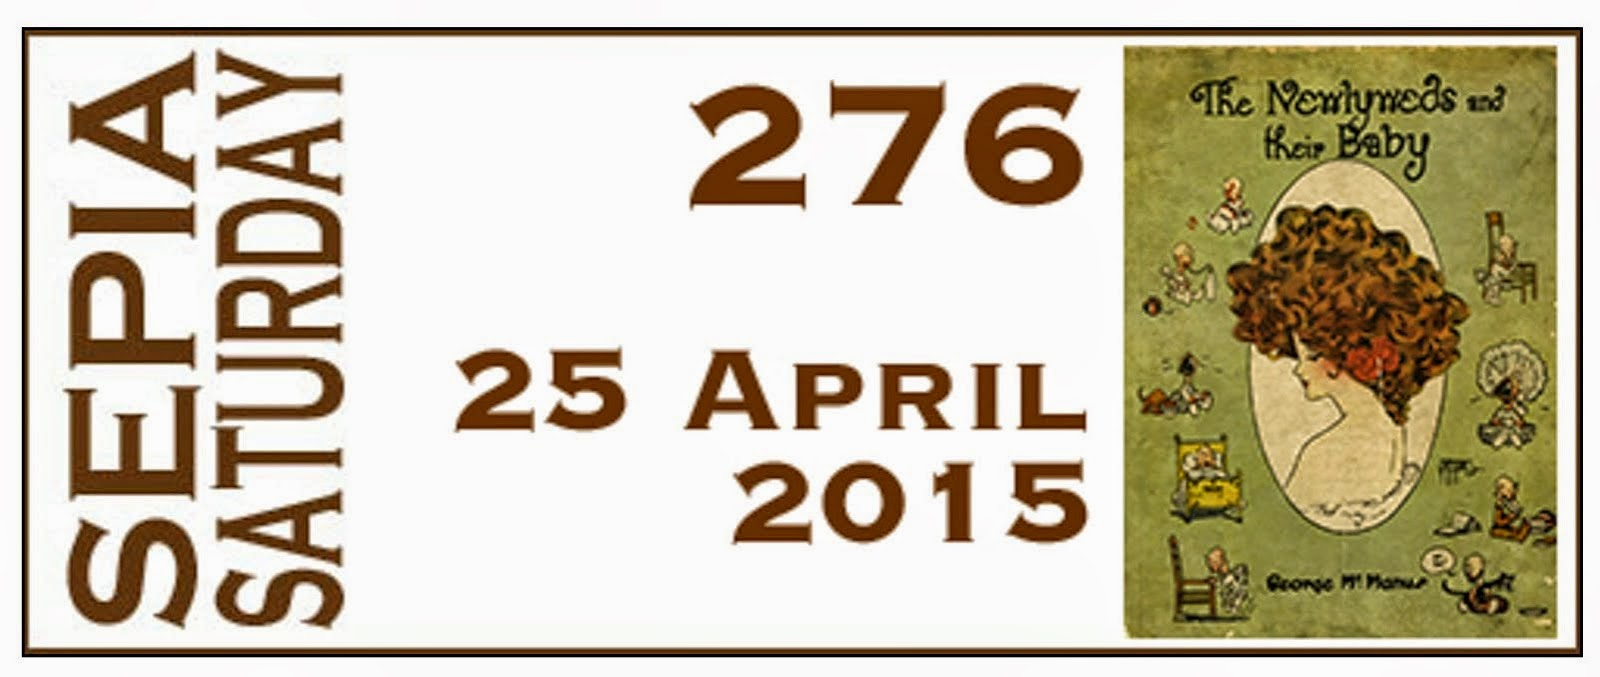 http://sepiasaturday.blogspot.com/2015/04/sepia-saturday-276-25-april-2015.html